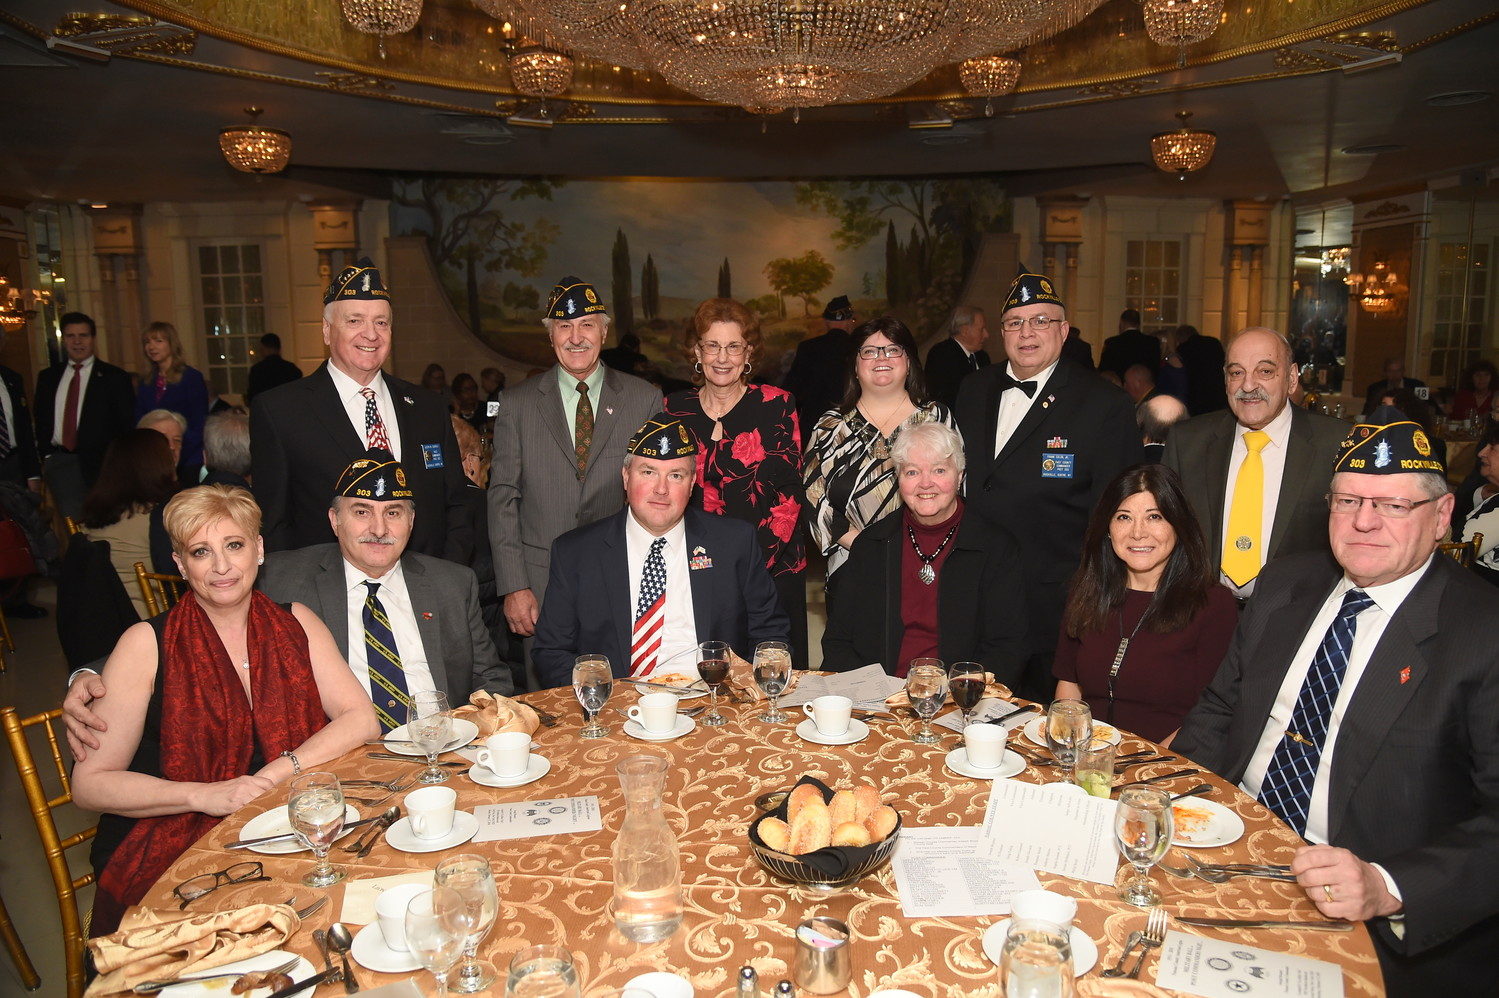 Members of the Rockville Centre American Legion Post 303 attended the event in Great Neck on Feb. 17.